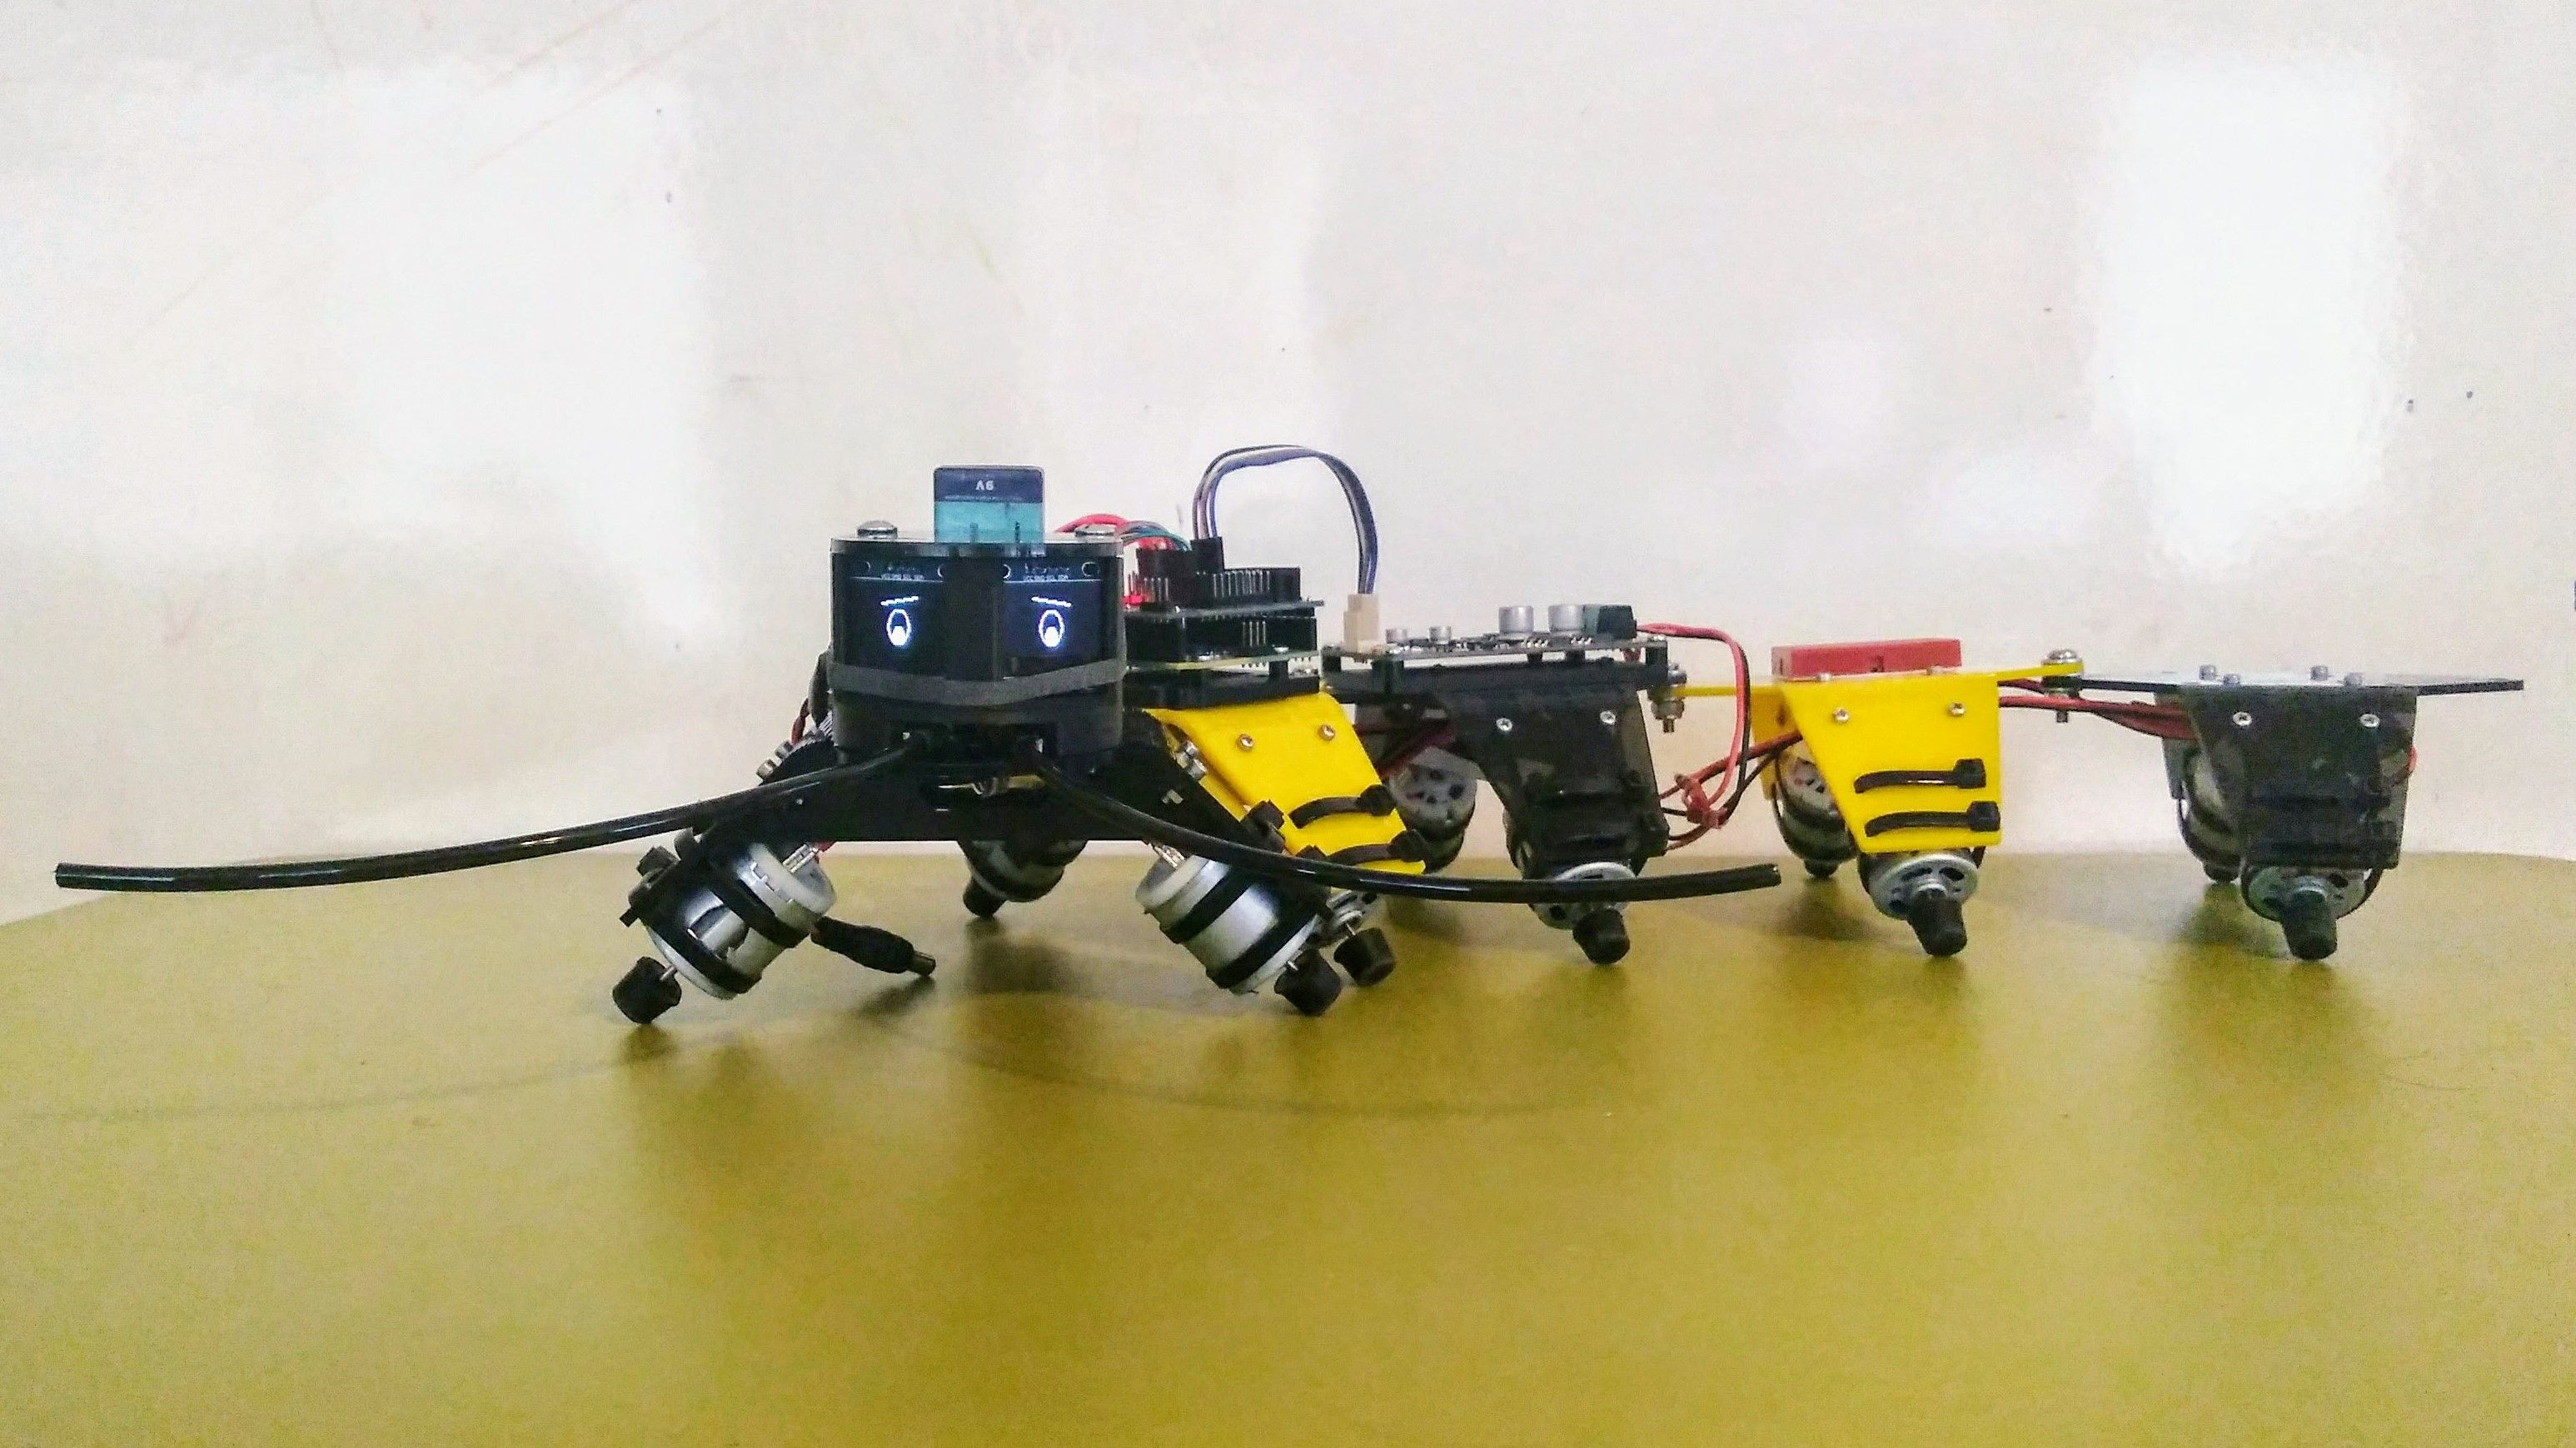 The Make-A-Pede is a open source robotics platform  It is based on a